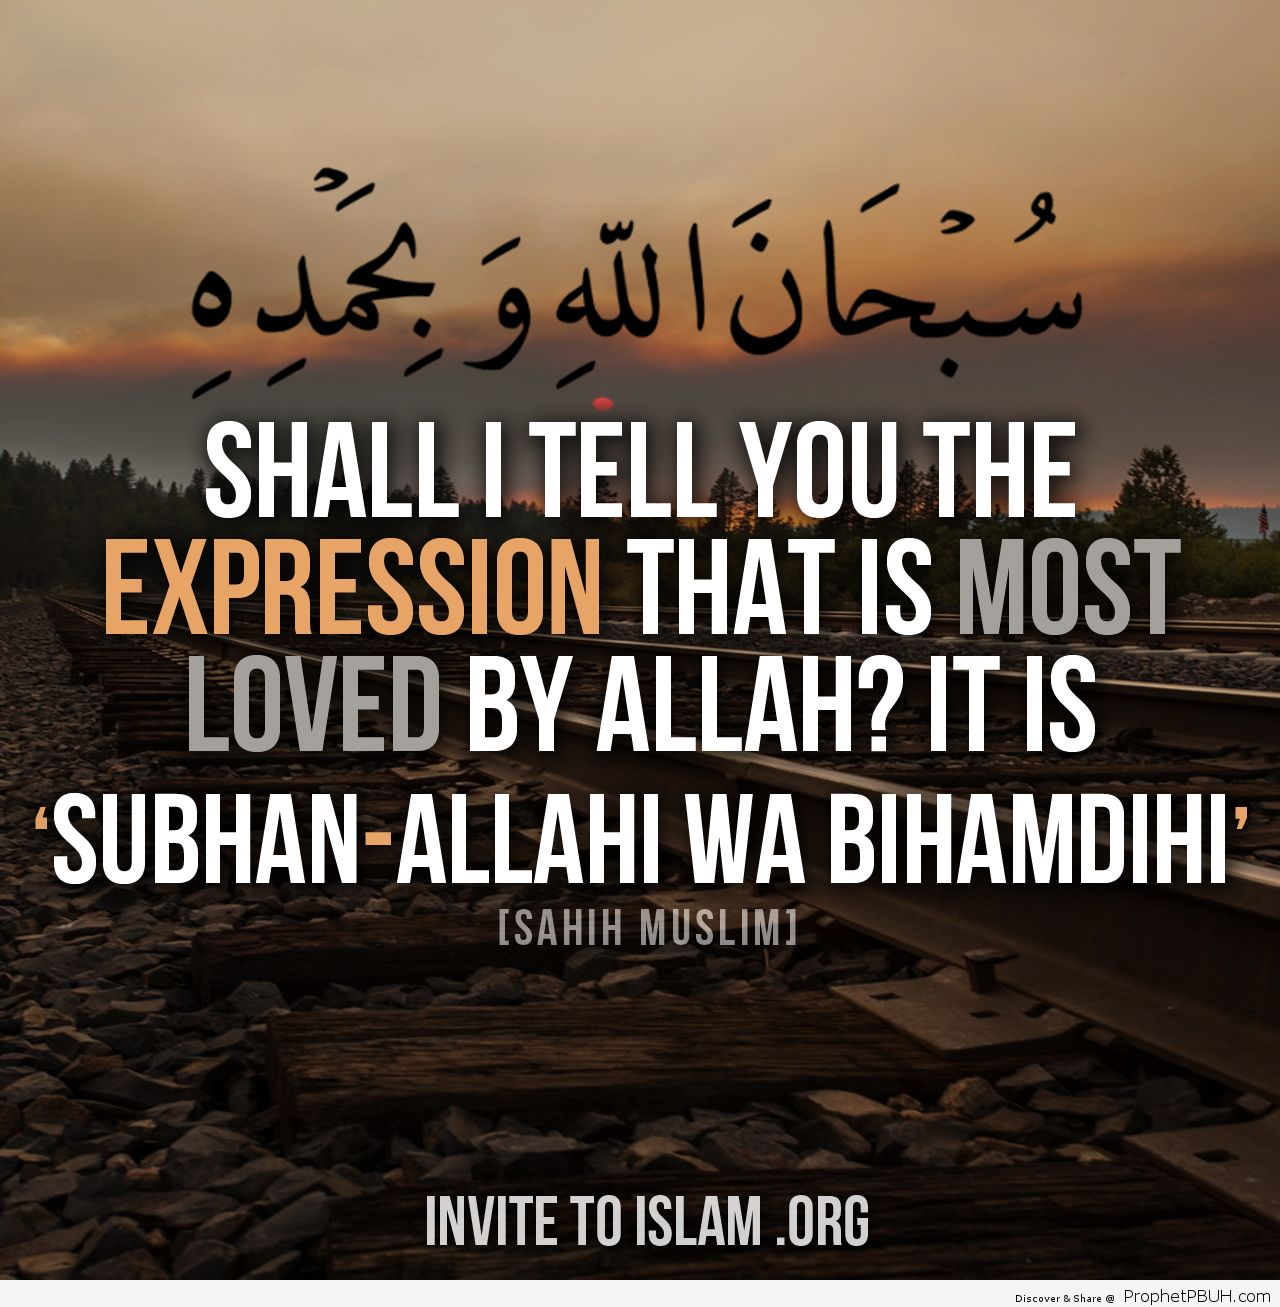 SubhanAllah wa biHamdihi Glory be to Allah and Praise Him Whoever says the above a hundred times during the day his sins are wiped away even if they are like the foam of the sea